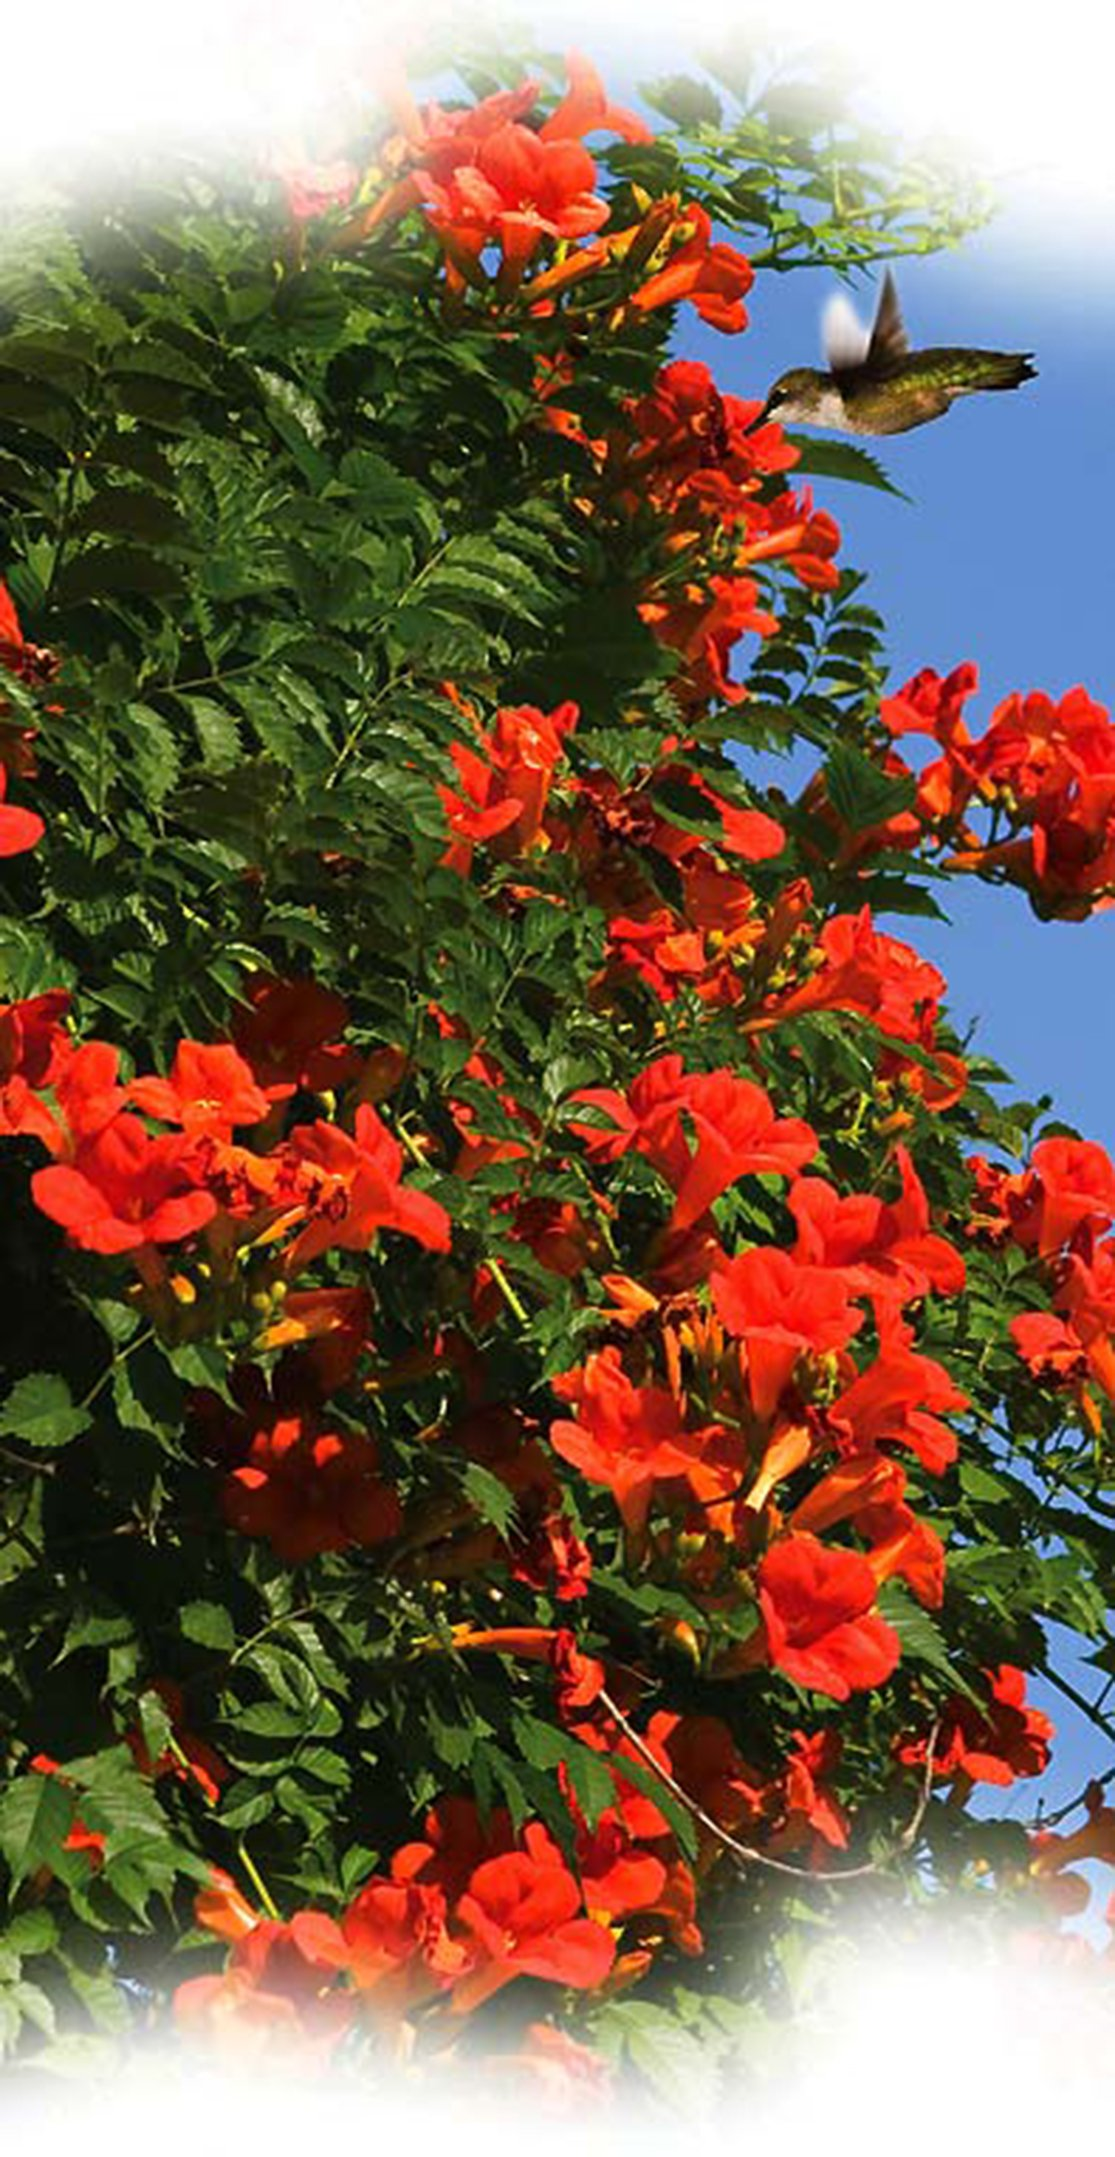 Trumpet Vine Creeper, Trumpet Flower, Campsis radican, (6) 16''-24'', Orange Flower, Orange Flowers, Vine, Vines, Hummingbird Vine, Hummingbird Flowers, Trumpet Vine Flower, Live Plants, Plant by Organic Heirloom Plants (Image #2)